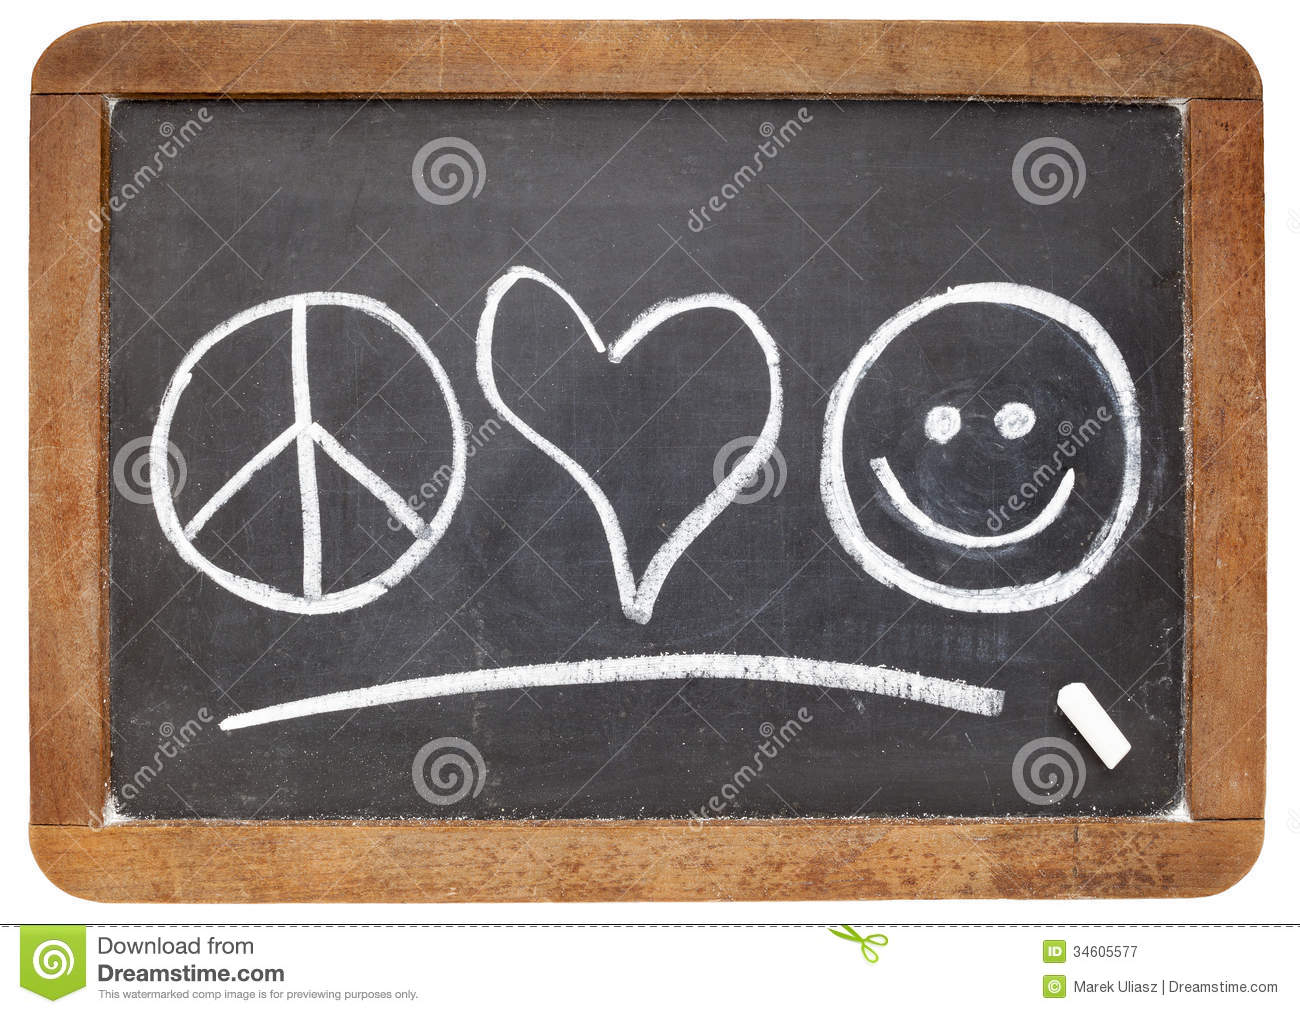 Peace love and happiness stock image image of love 34605577 peace love and happiness biocorpaavc Image collections